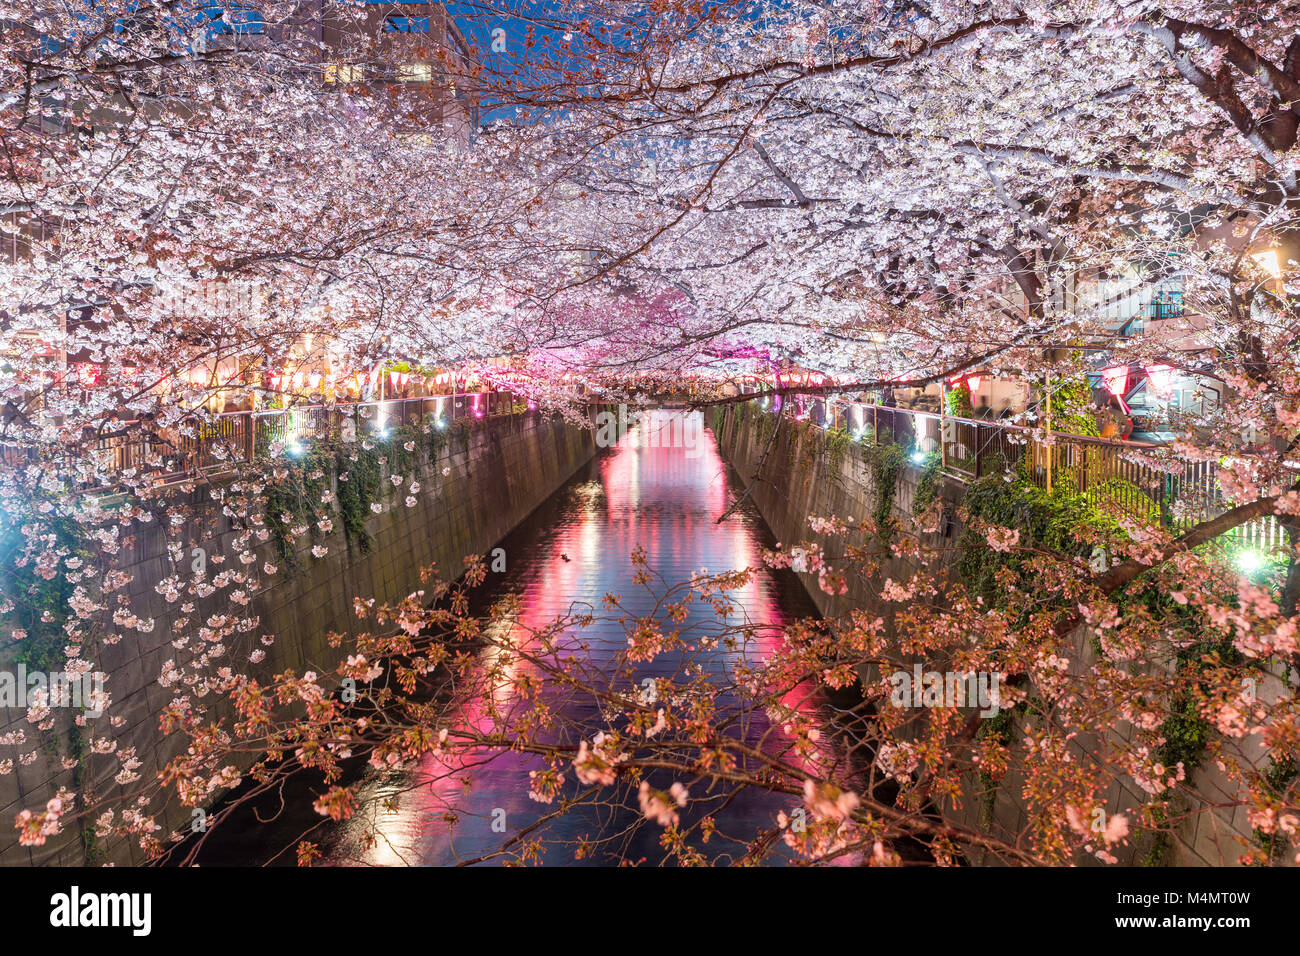 Cherry blossom lined Meguro Canal at night in Tokyo, Japan. Springtime in April in Tokyo, Japan. - Stock Image